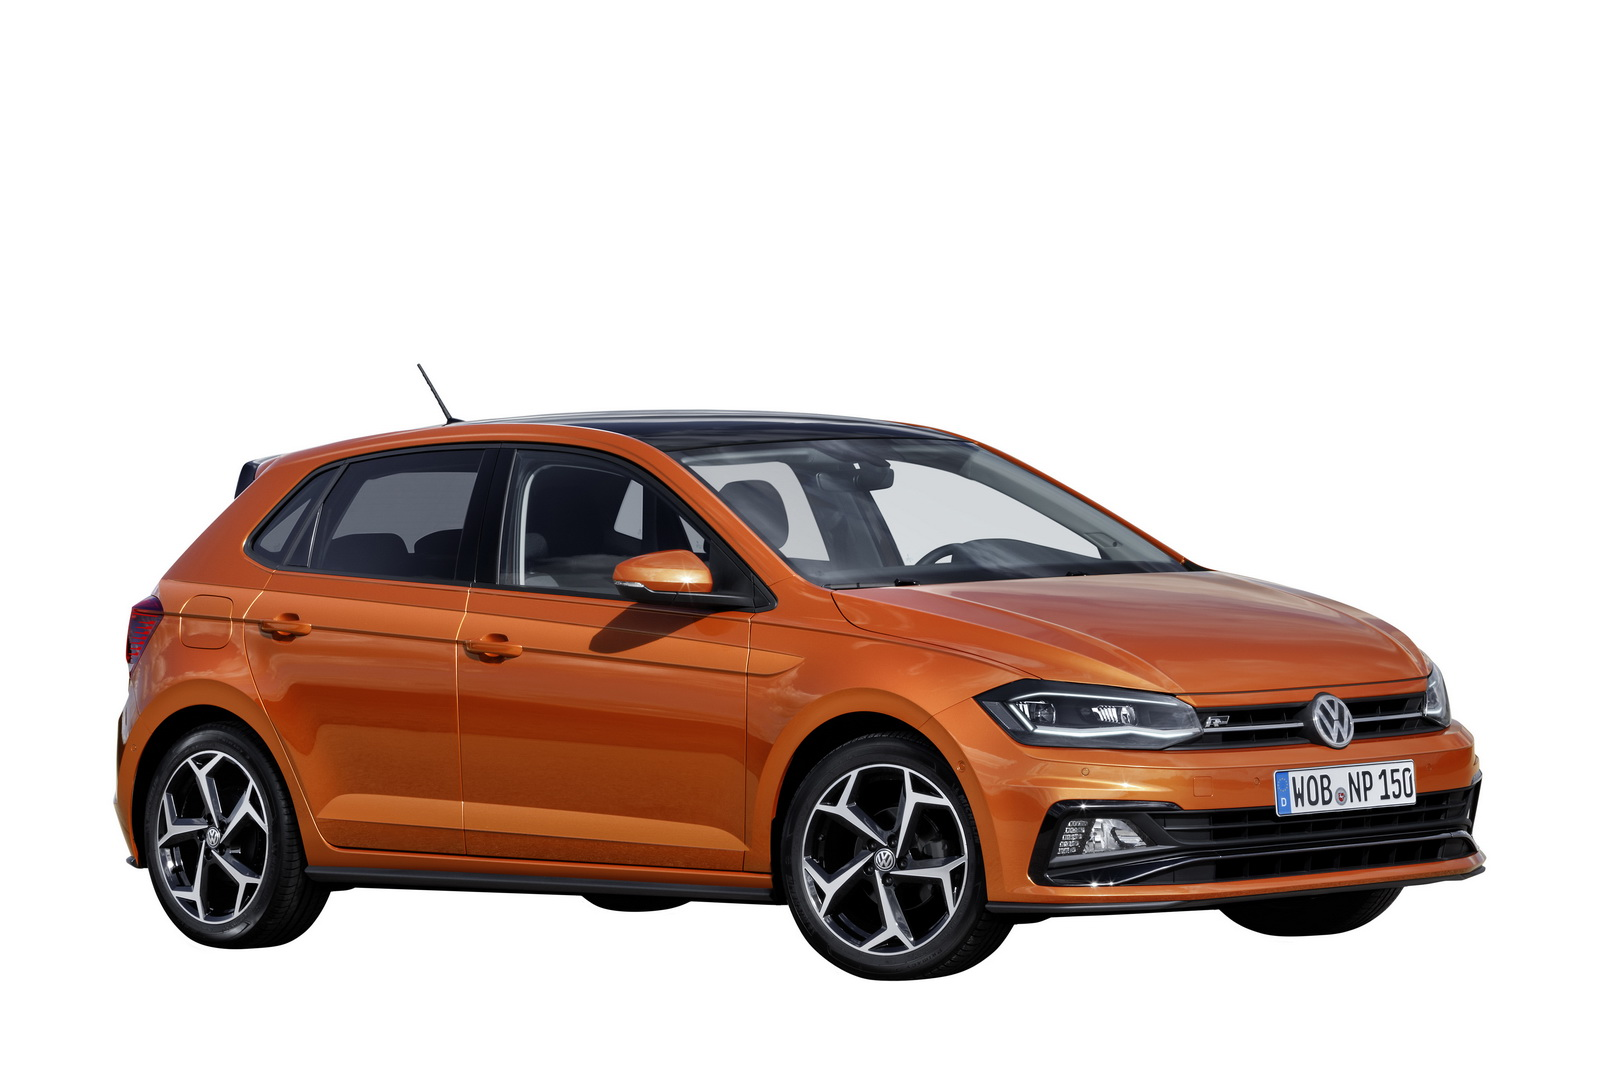 Volkswagen Polo and Polo GTI 2018 (13)